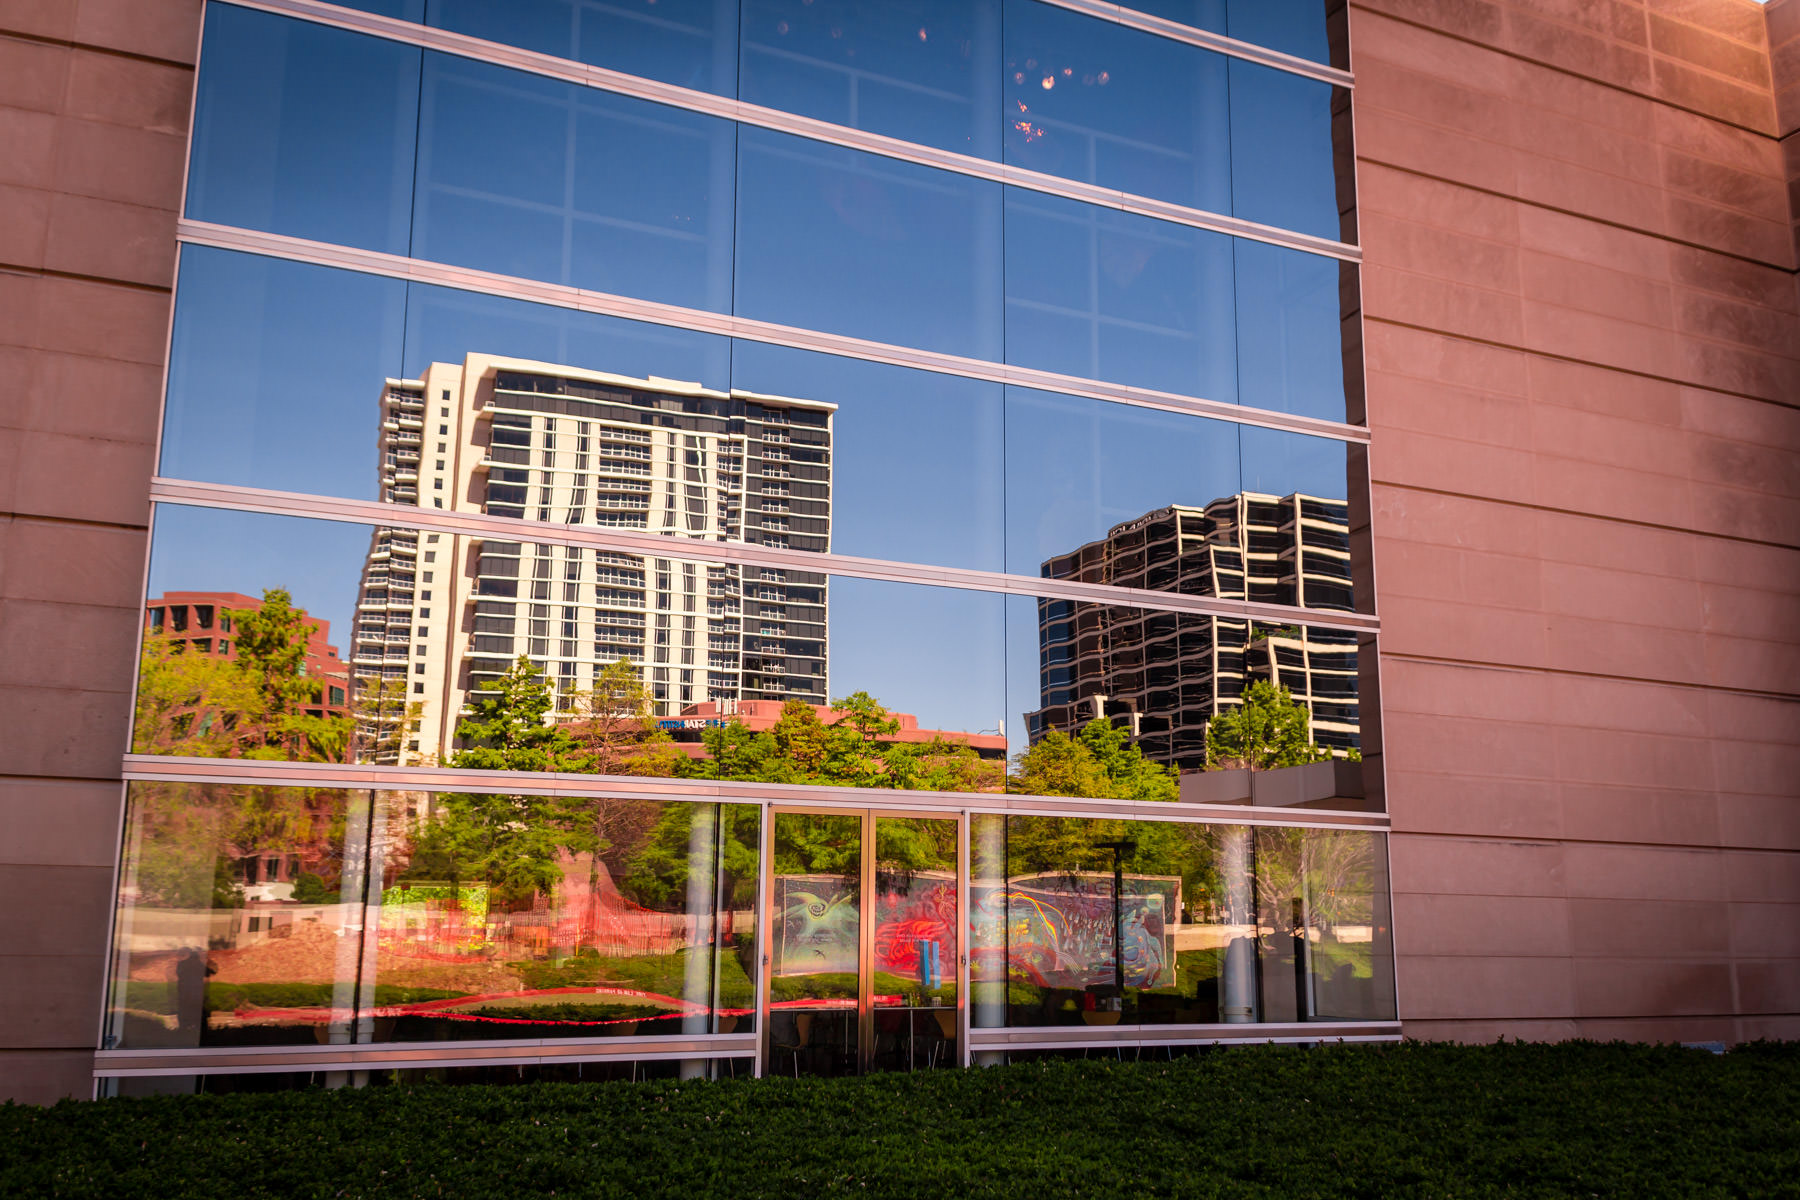 Buildings in Uptown Dallas reflected in windows of the Dallas Museum of Art.